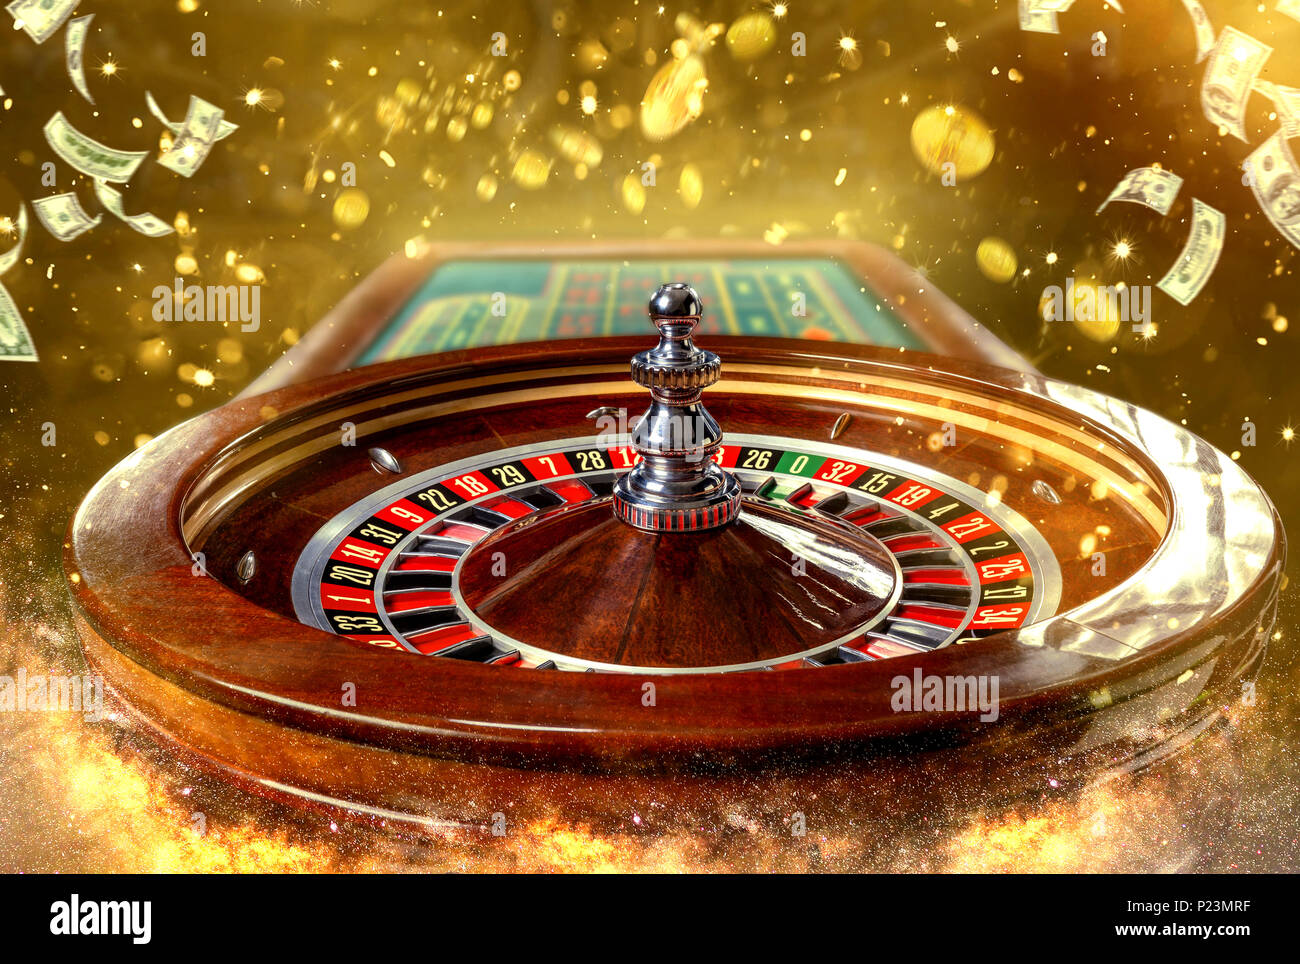 Collage of casino images with a close-up vibrant image of multicolored casino roulette table with poker chips - Stock Image